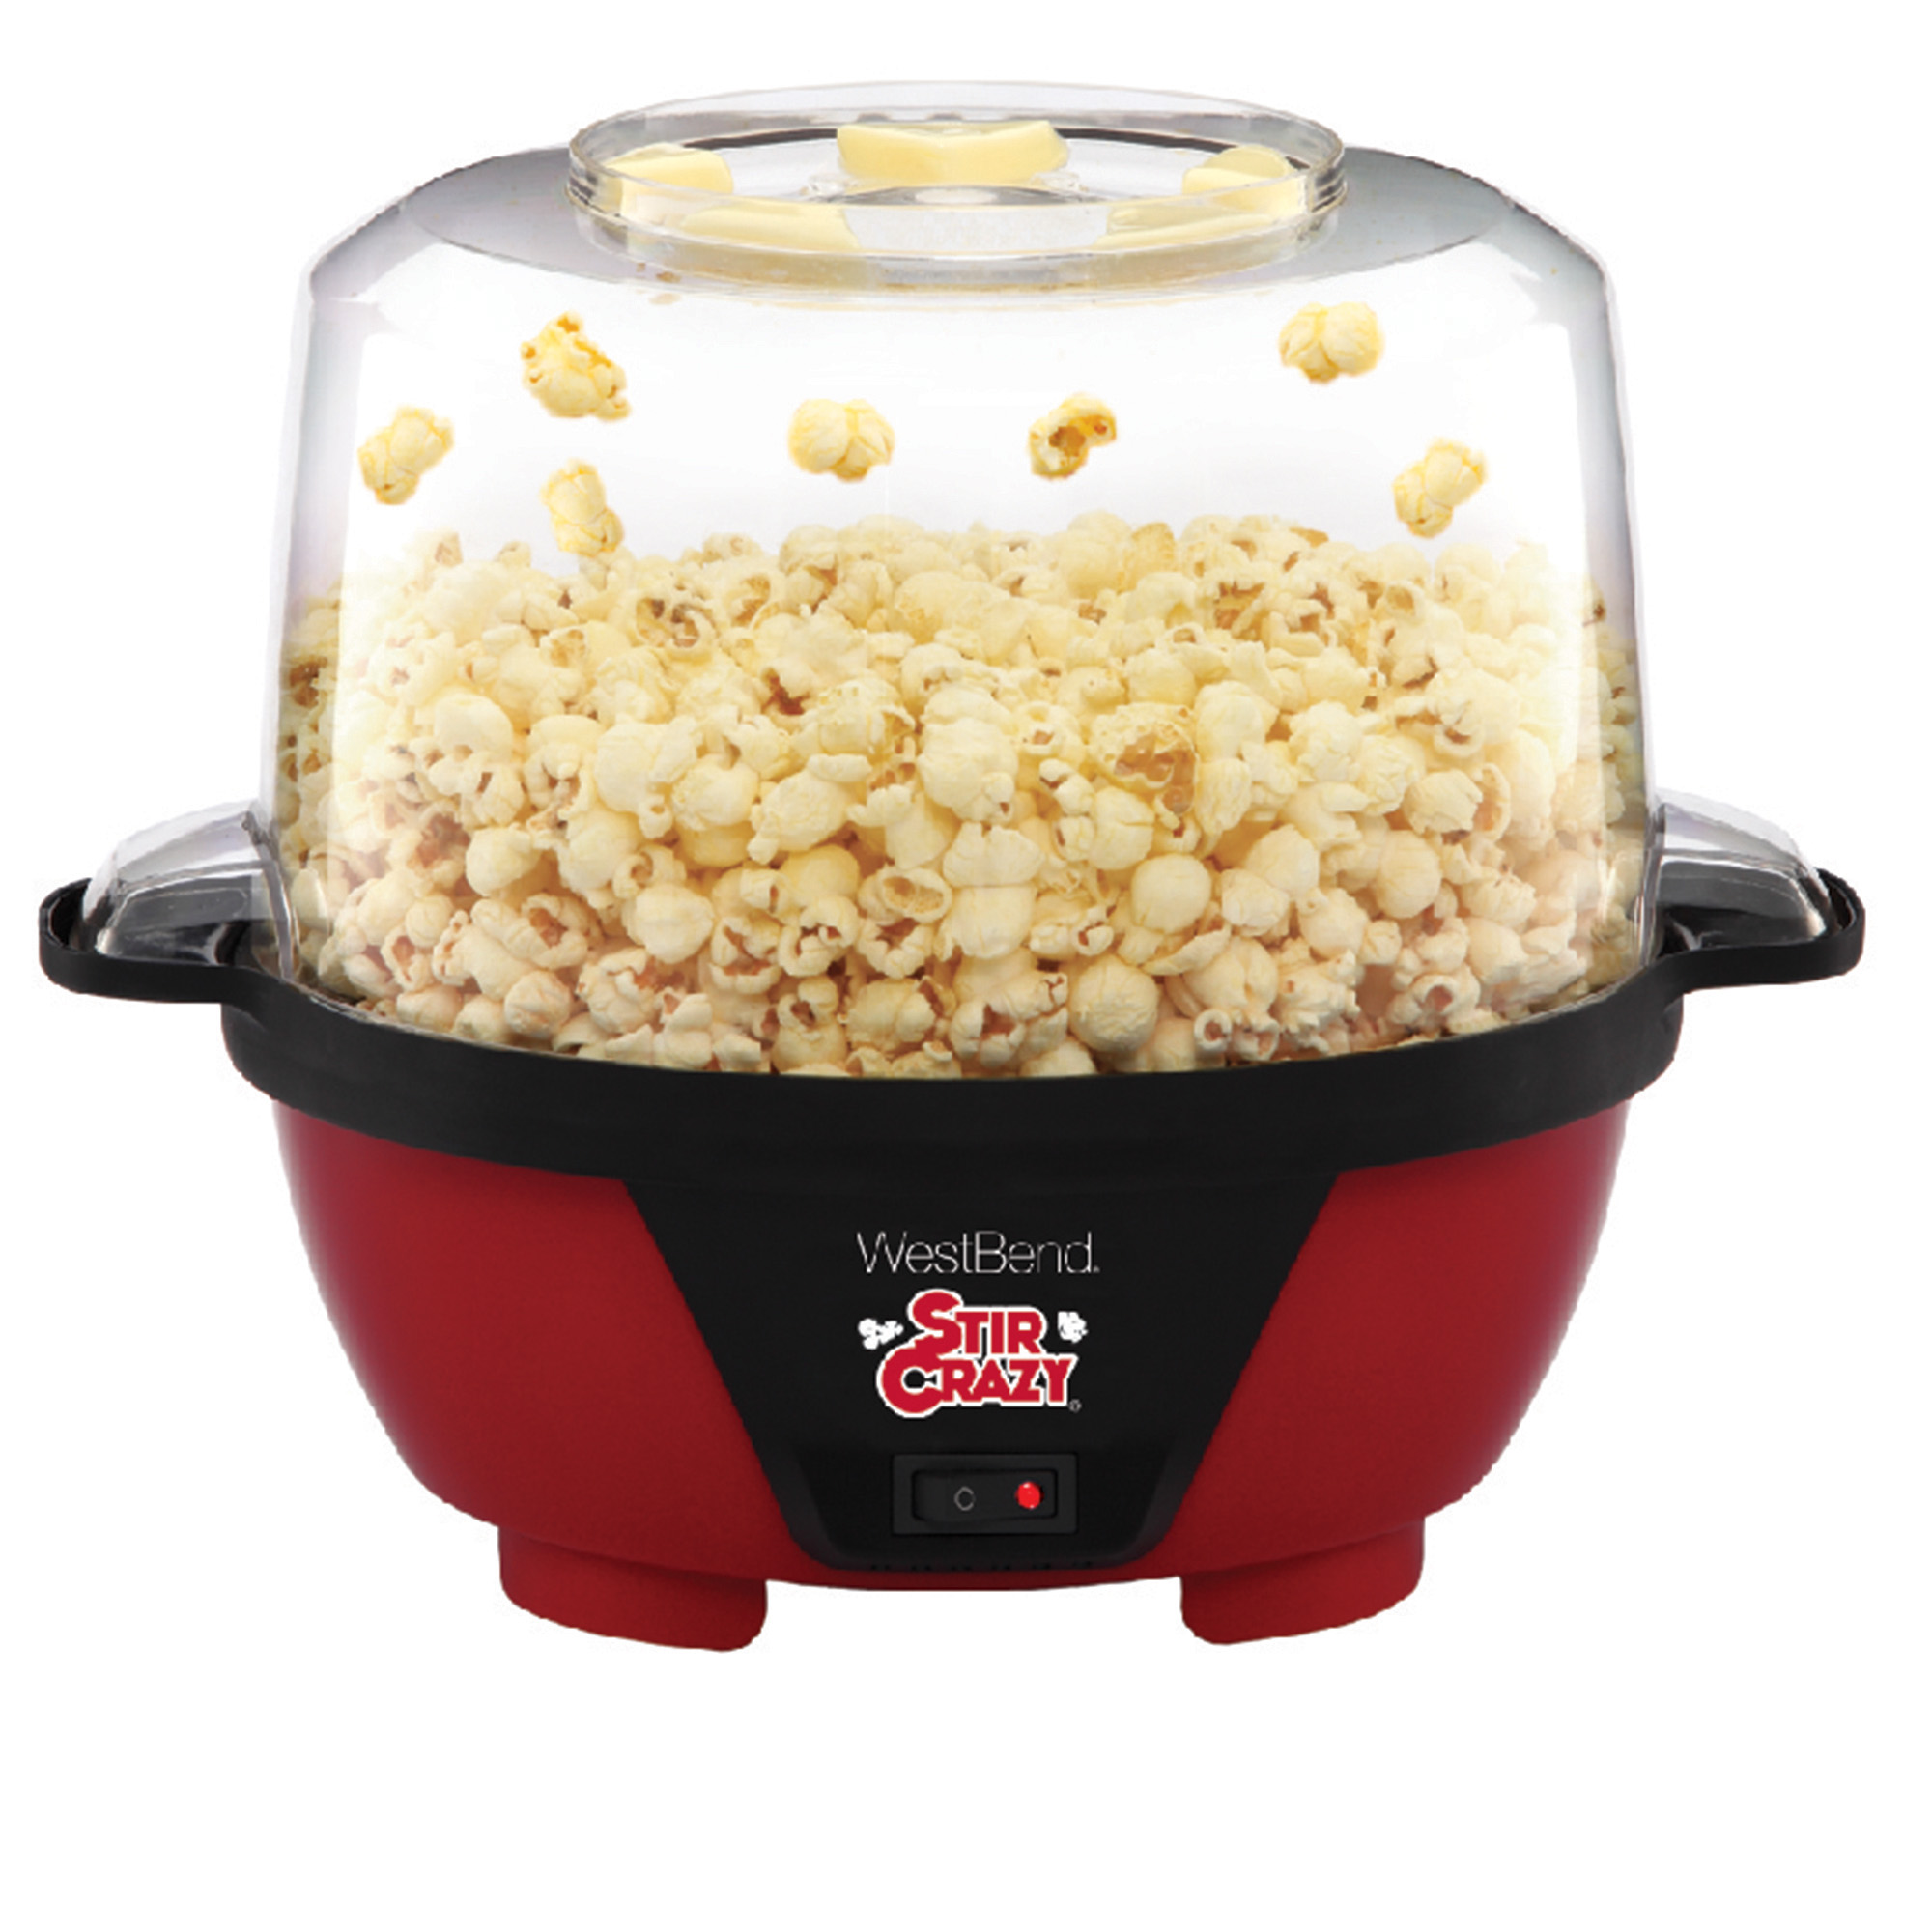 West Bend 82505 Stir Crazy Electric Popcorn Machine, Red